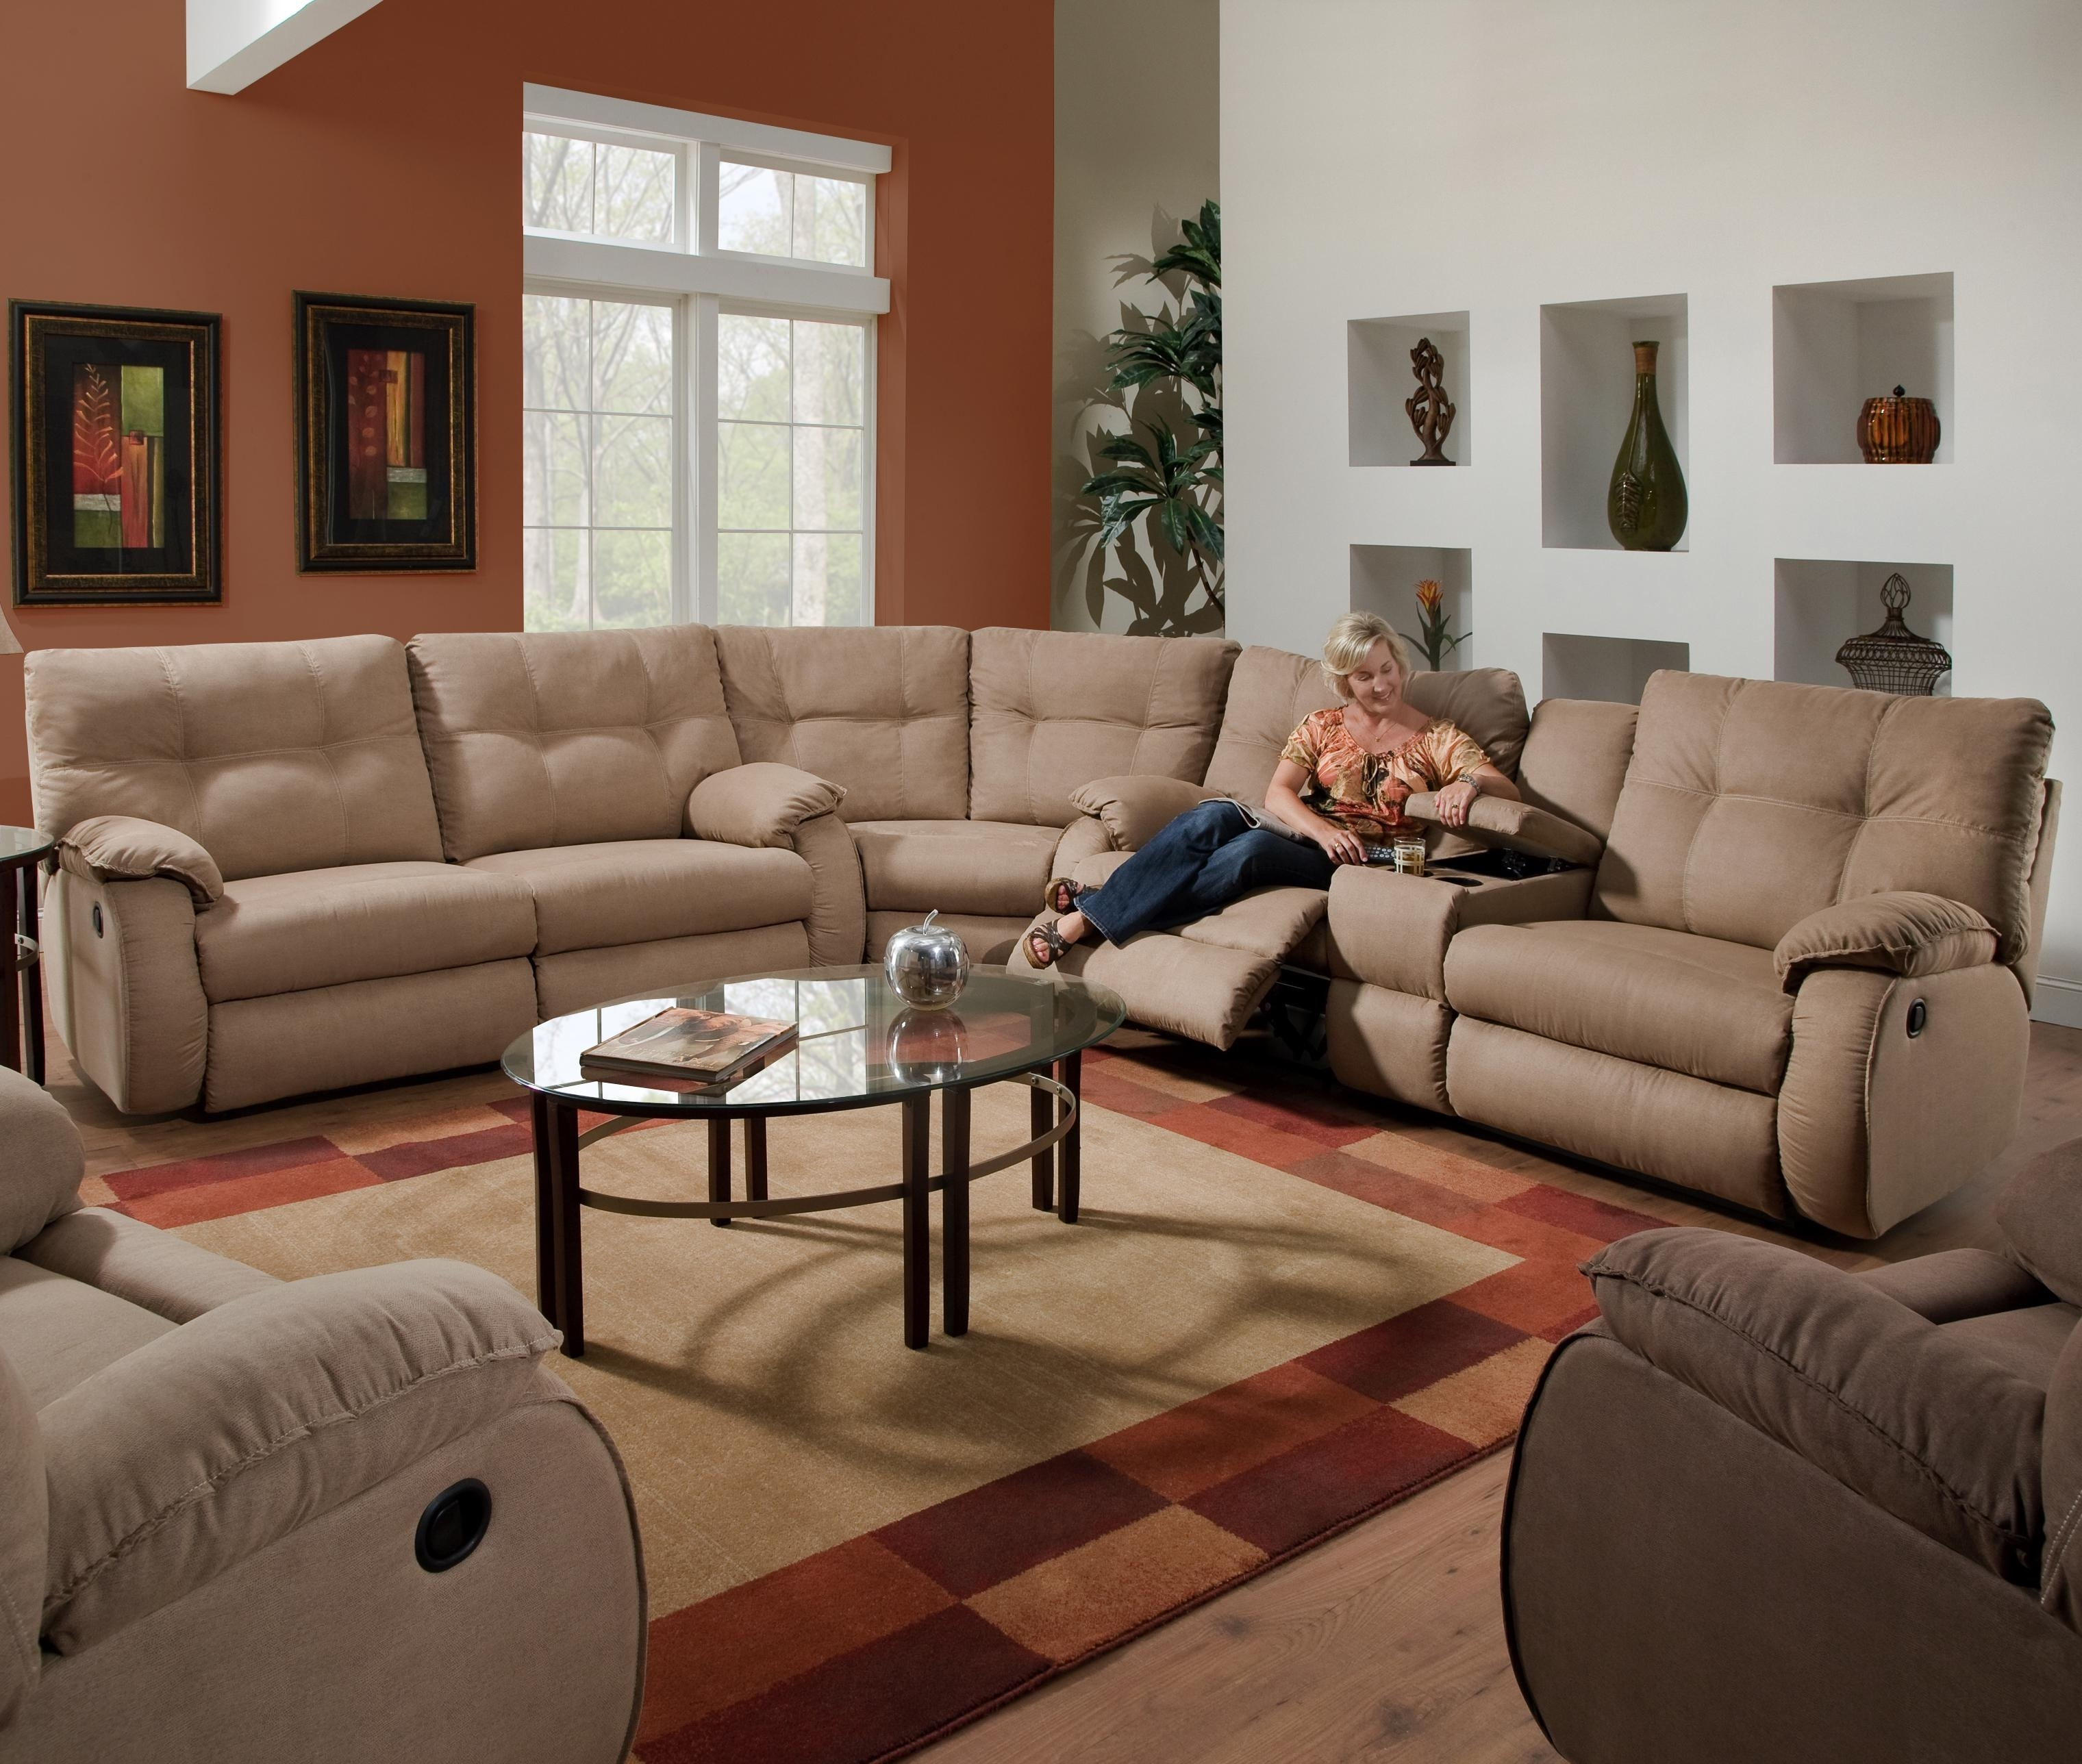 Sectional Sofas With Recliners | Aifaresidency With Sectional Sofas With Recliners (View 14 of 15)